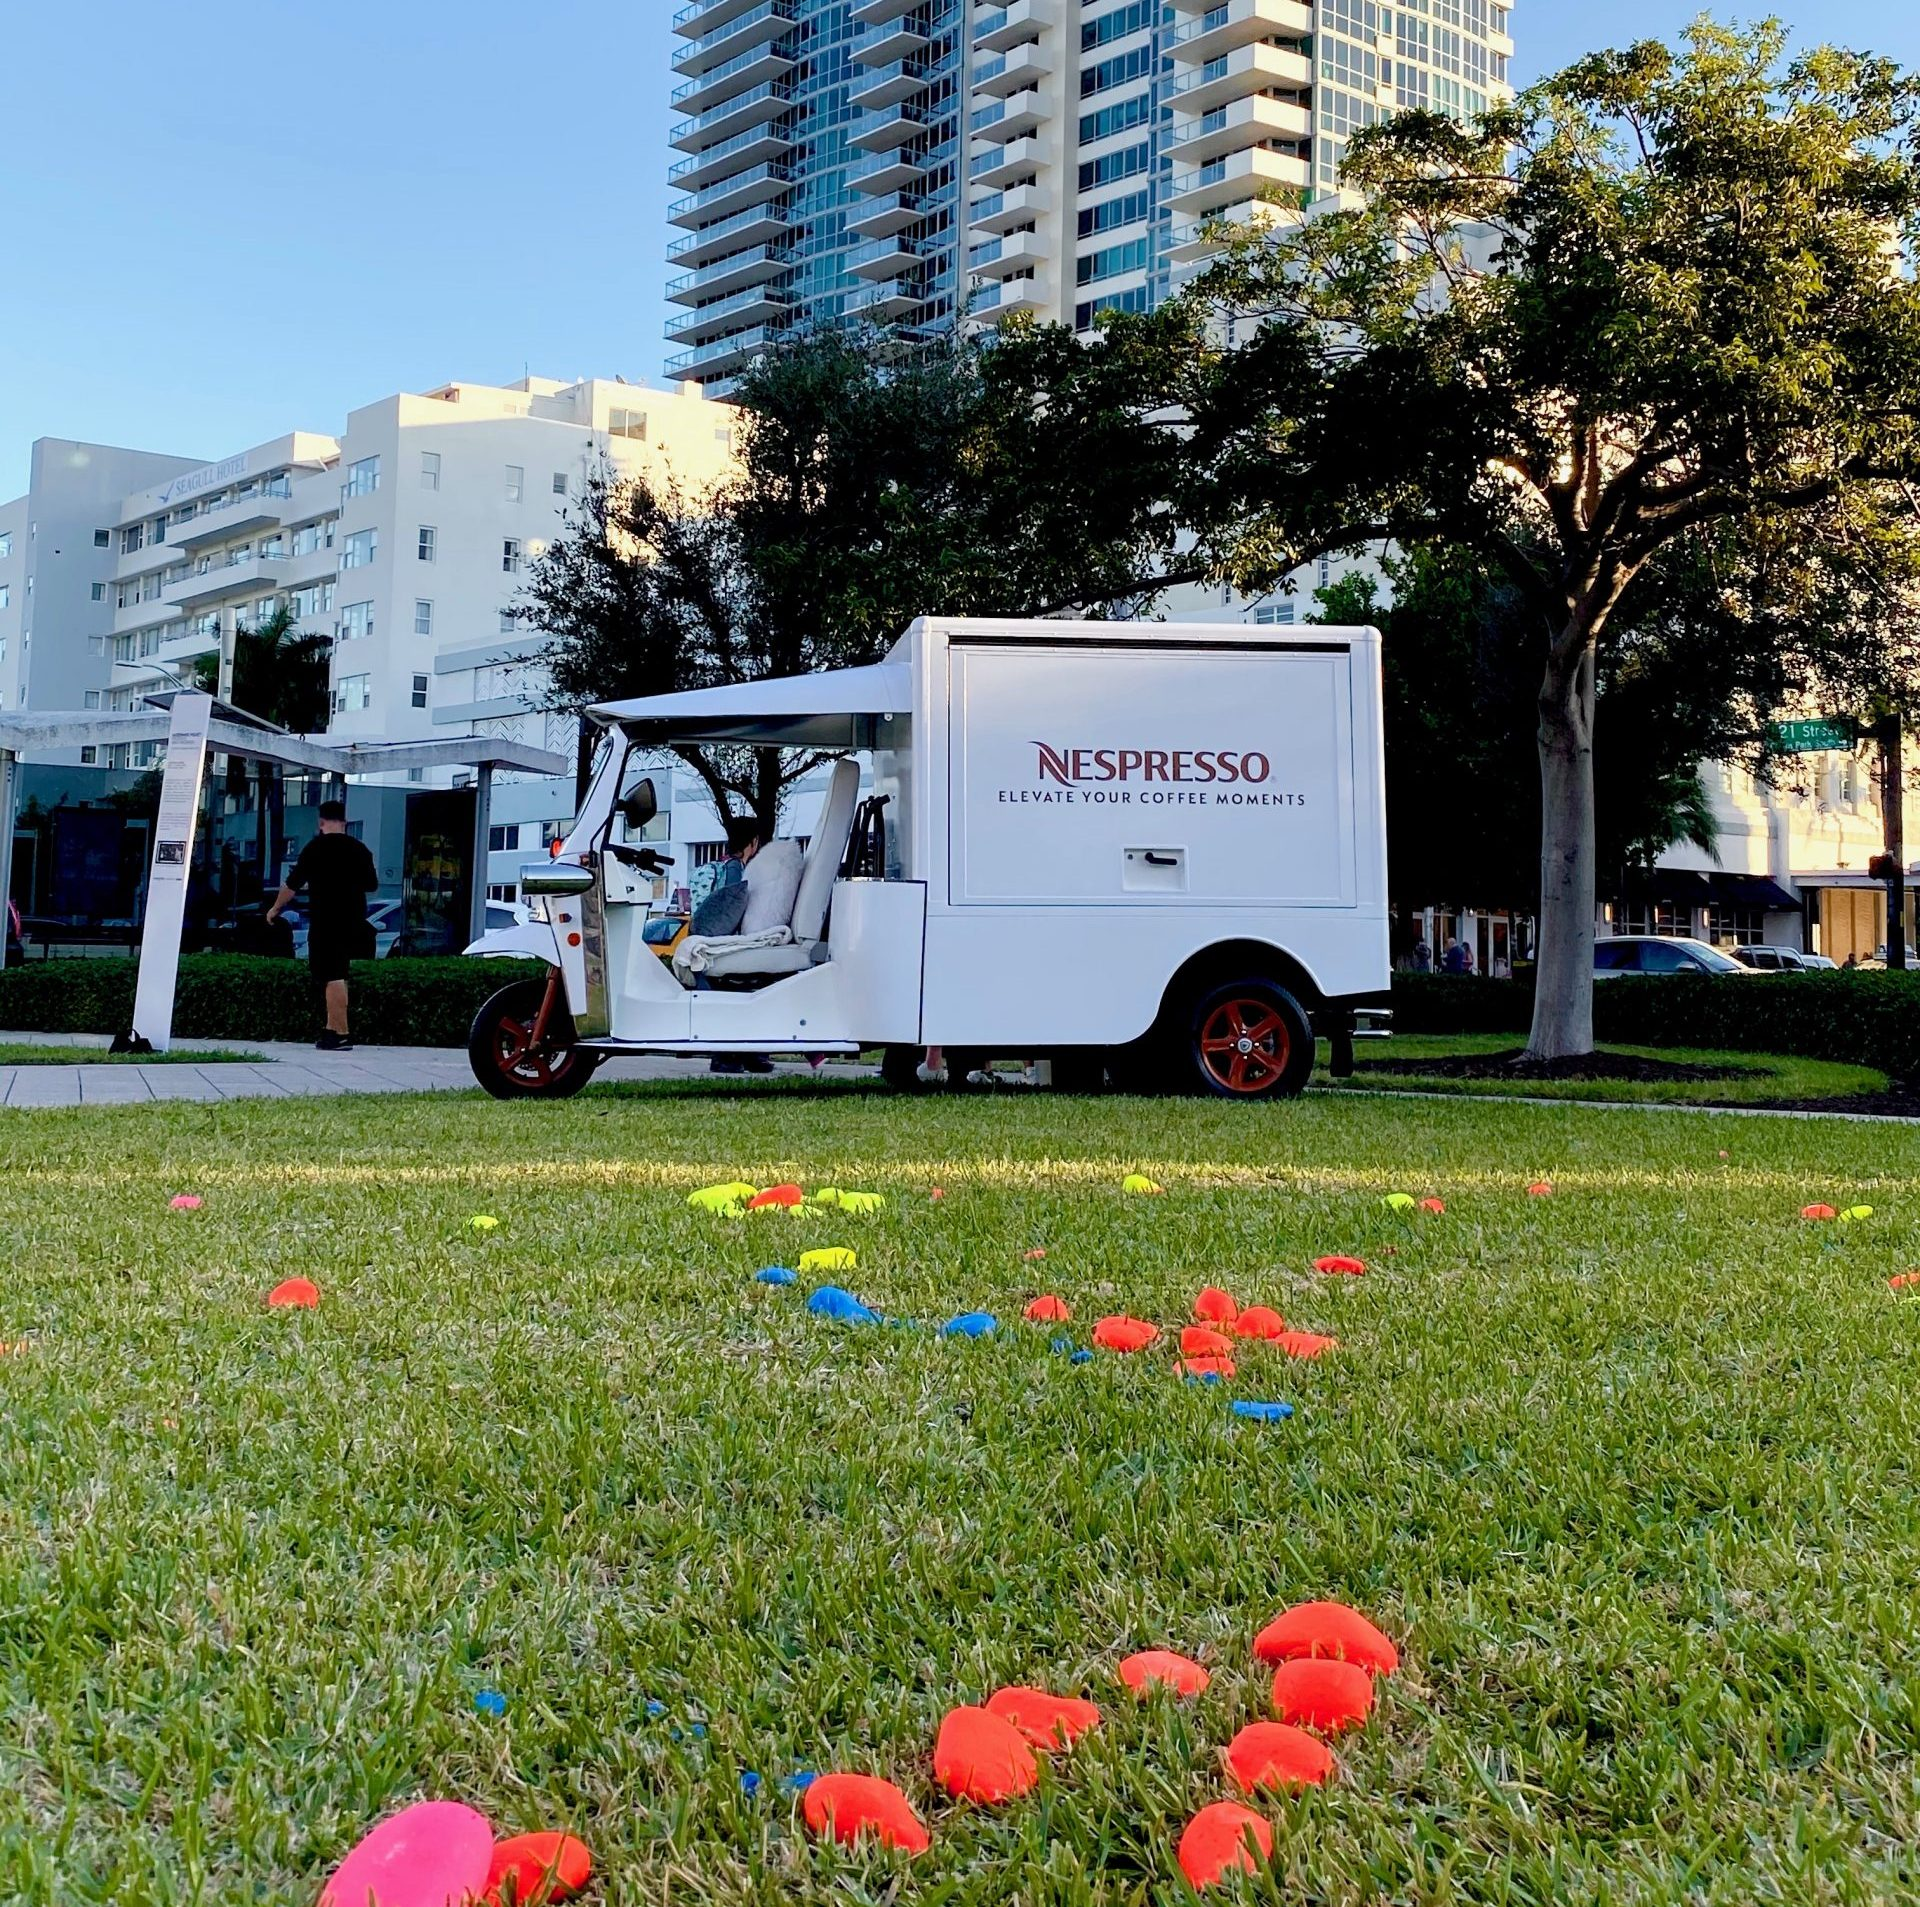 Miami Marketing Experiential Vehicle